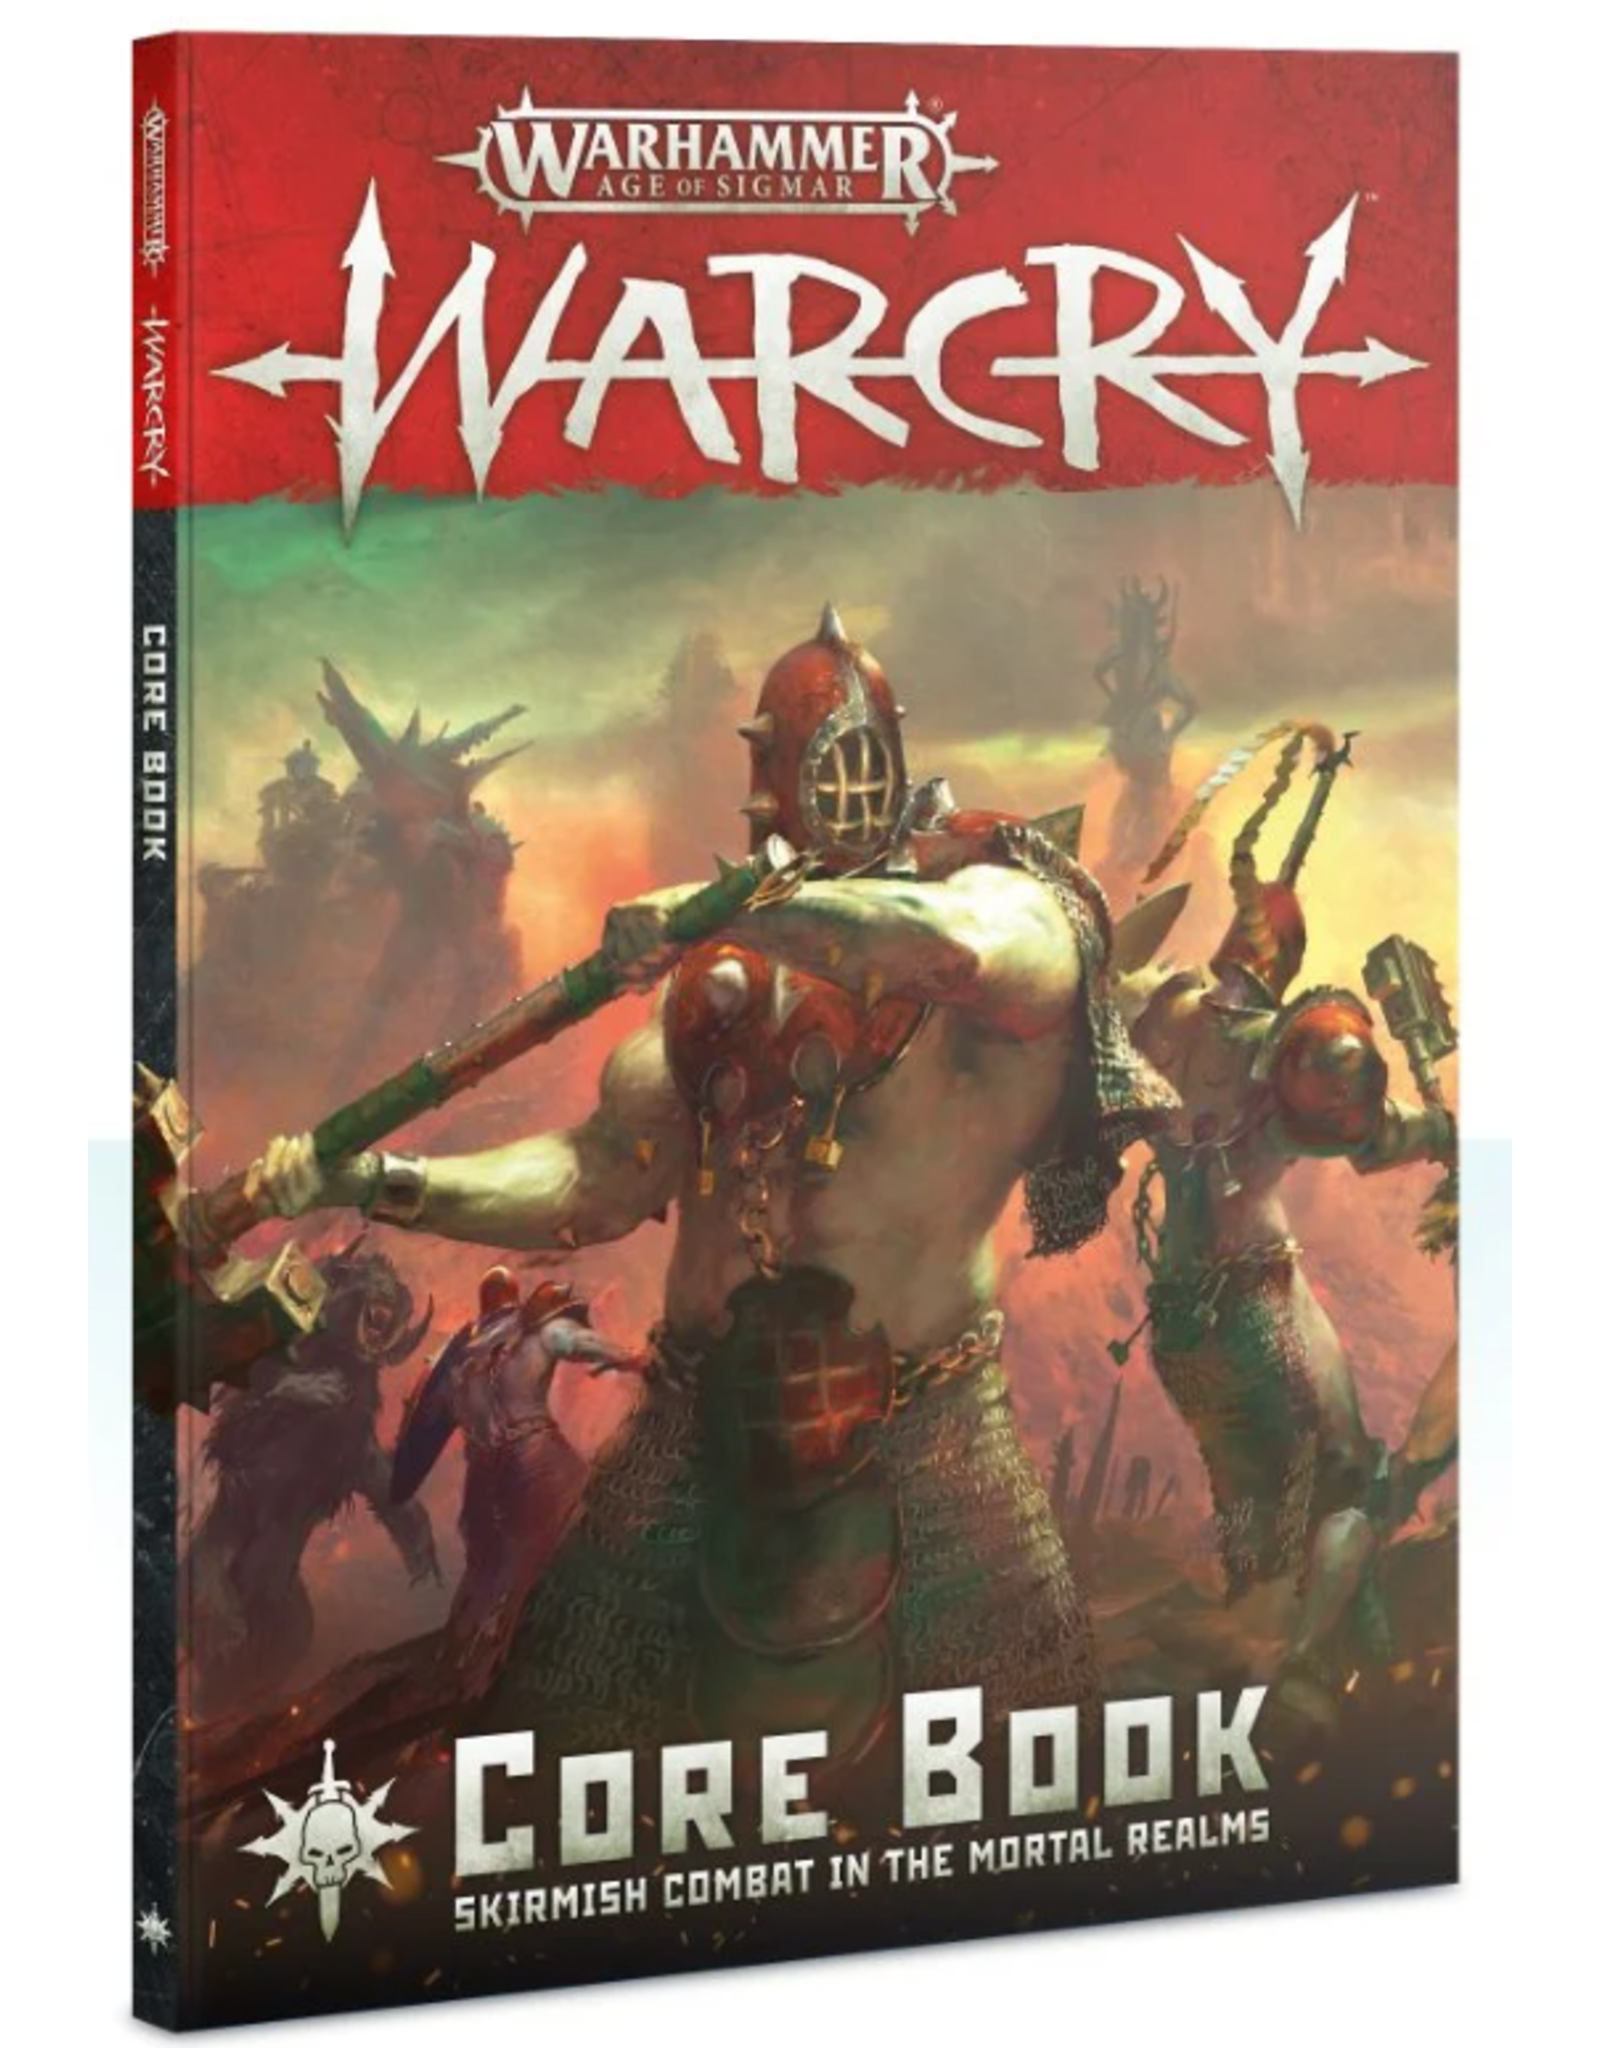 Age of Sigmar Warcry Core Book